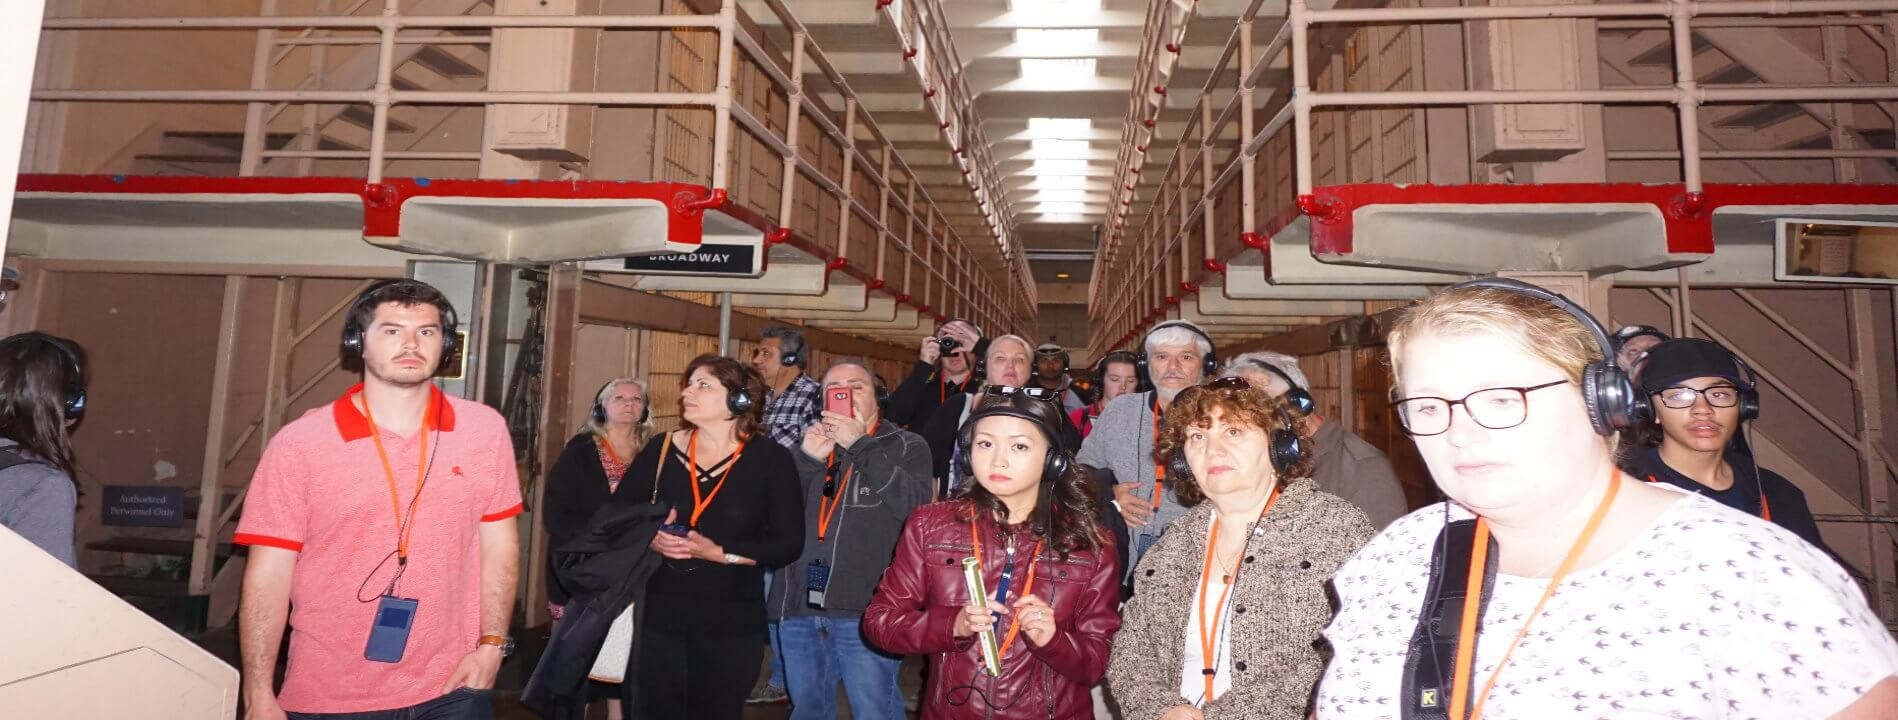 inside_alcatraz_island_prison_cellhouse_audio_tour